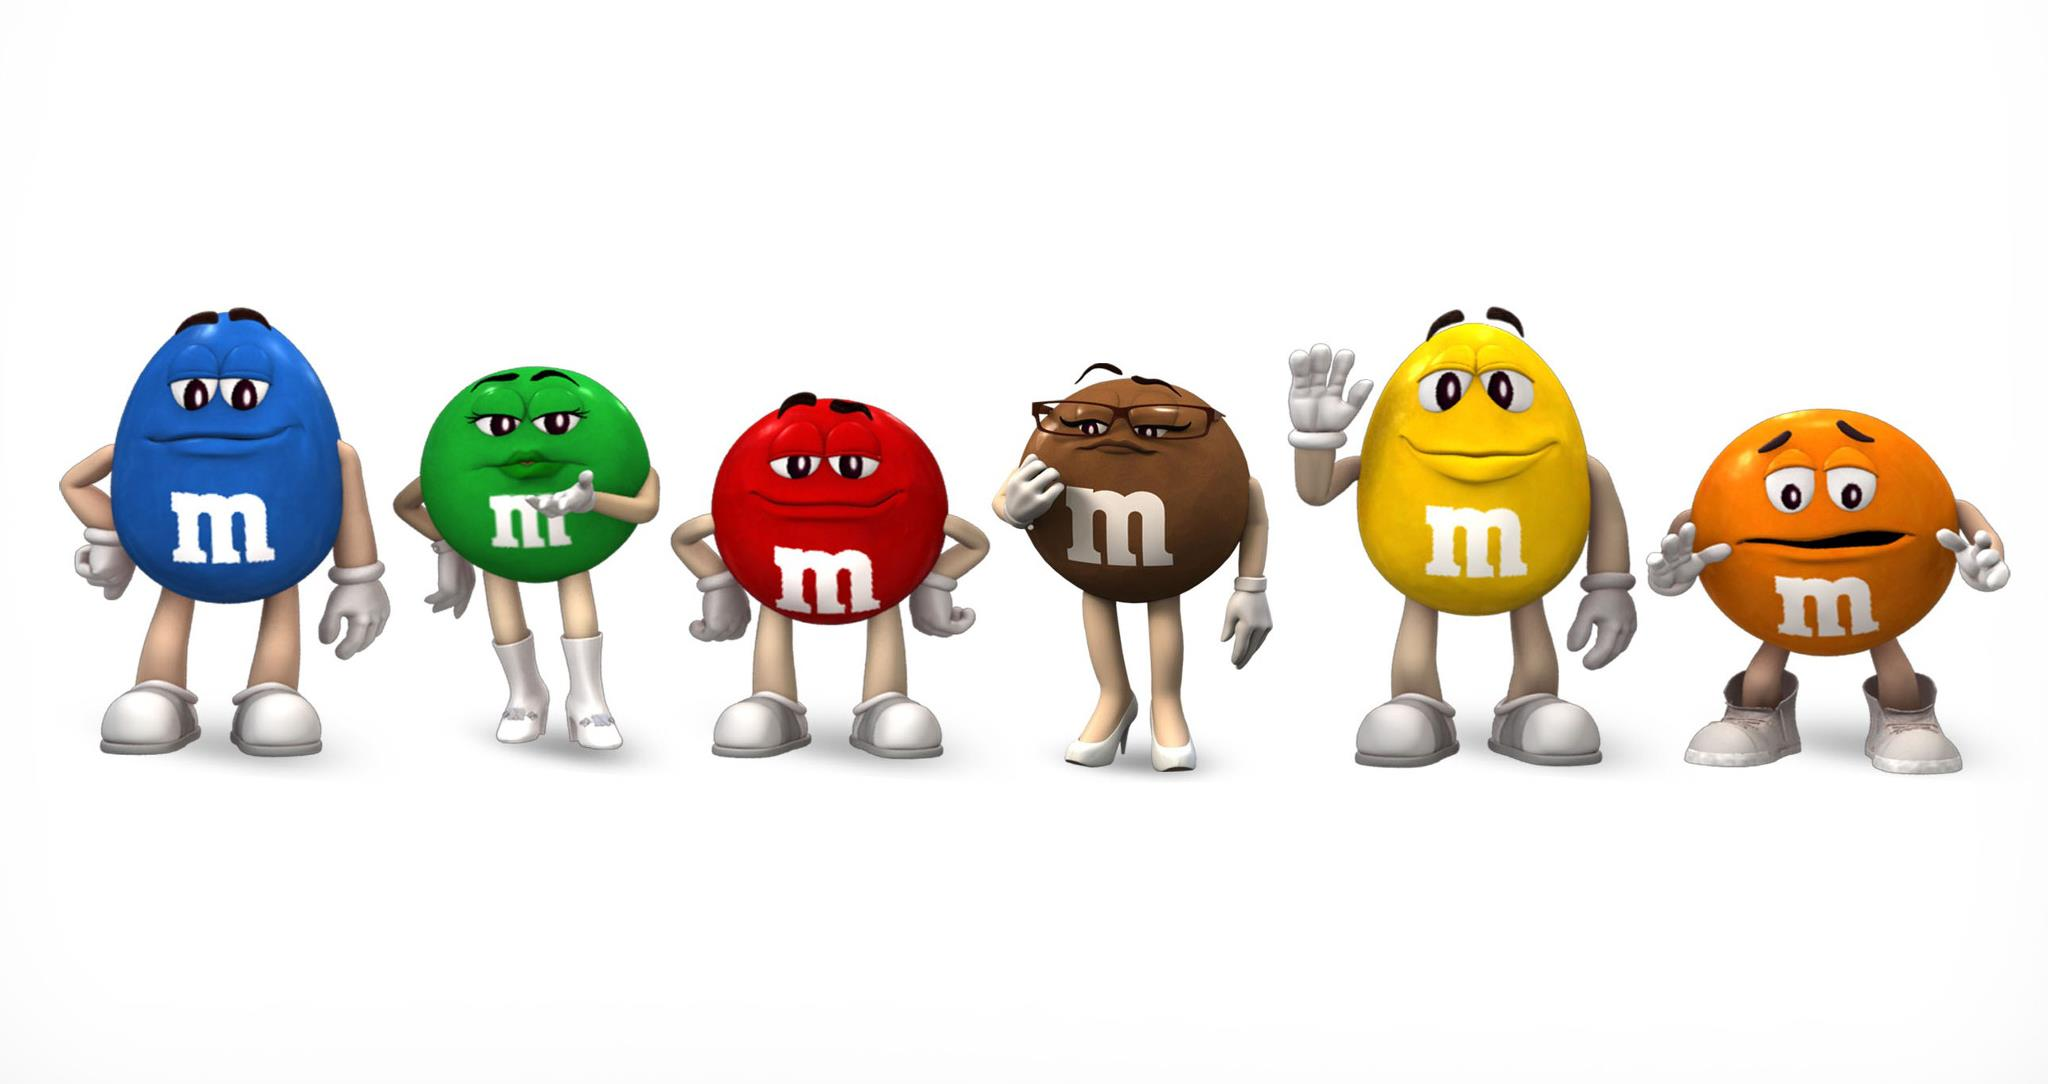 ... clipart misc m m characters the whol-... clipart misc m m characters the whole gang characters ...-7